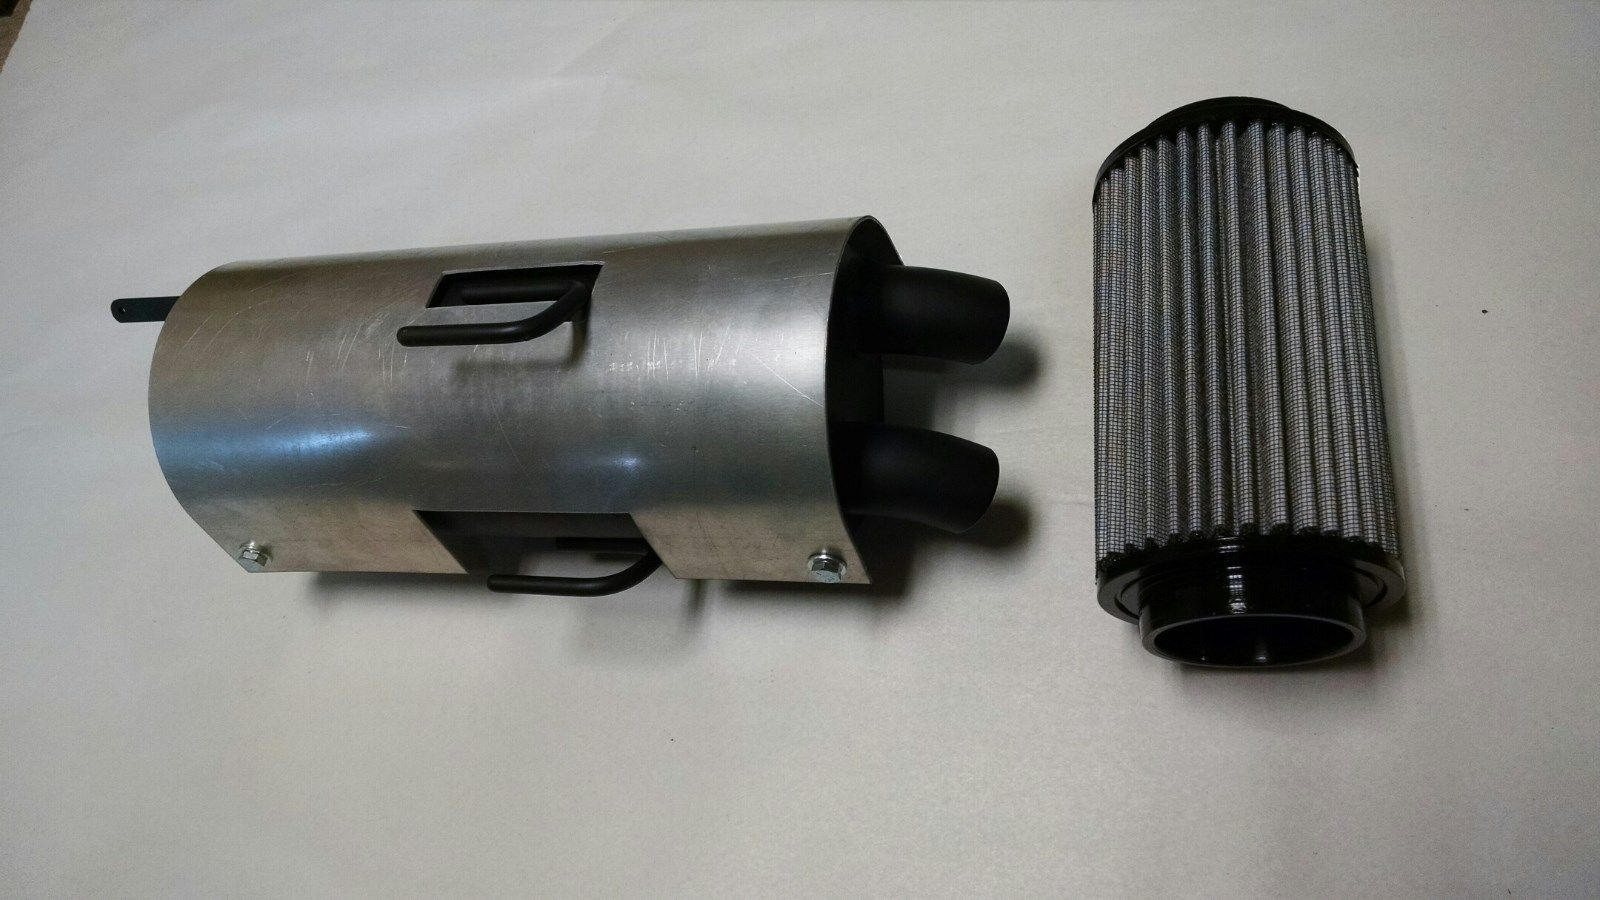 Webb Fuel Filters Polaris Scrambler 850 Trail Tamer Muffler Plus High Flow Air Filter Lightbox